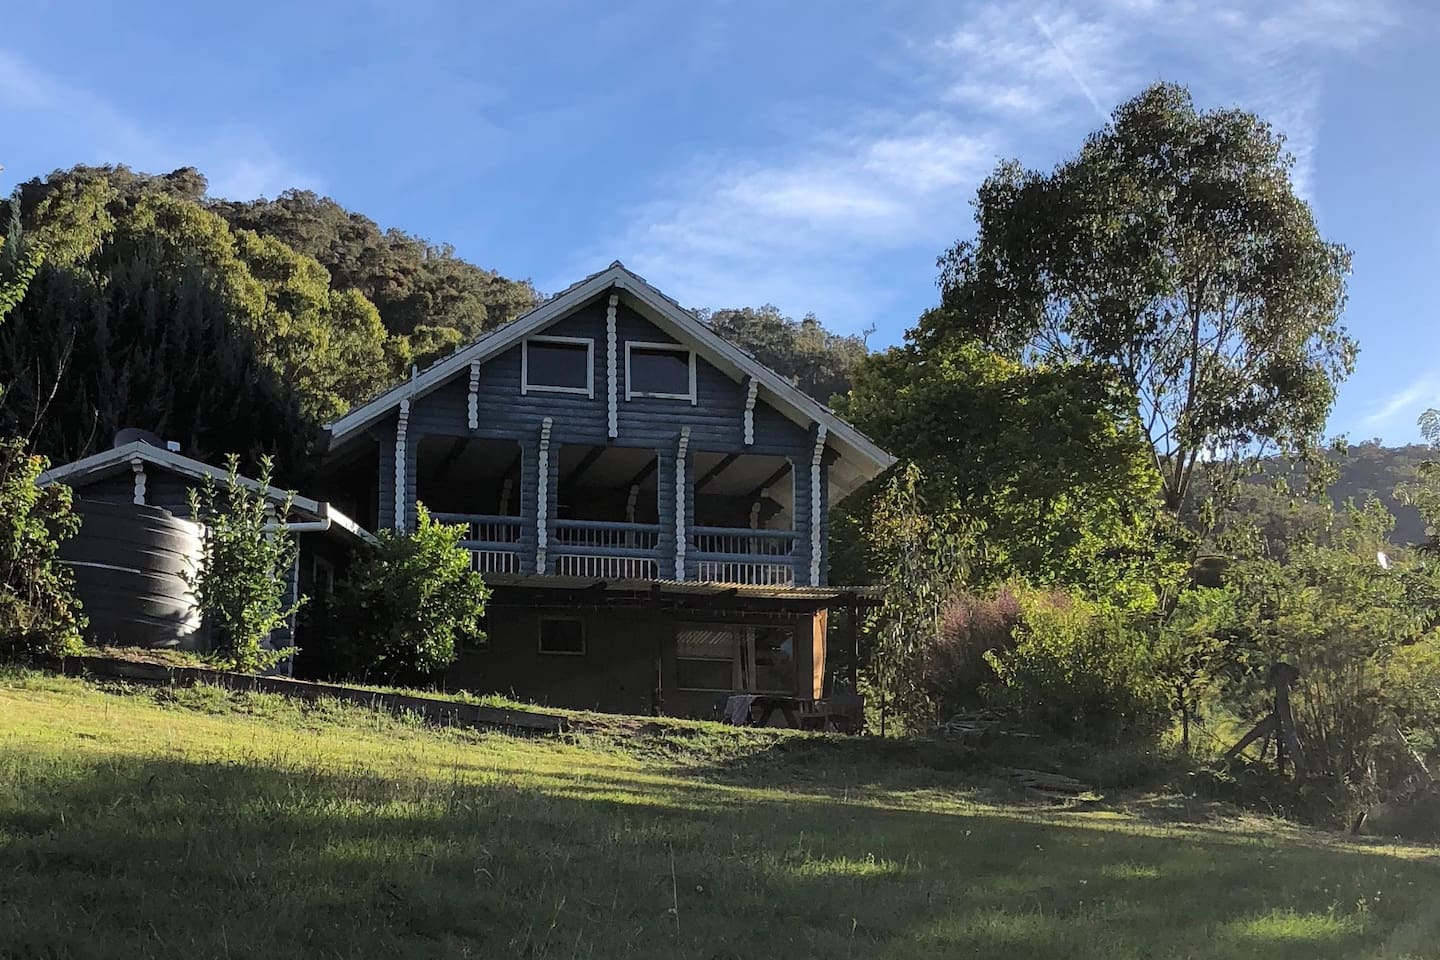 The Blue House on Micalong Creek